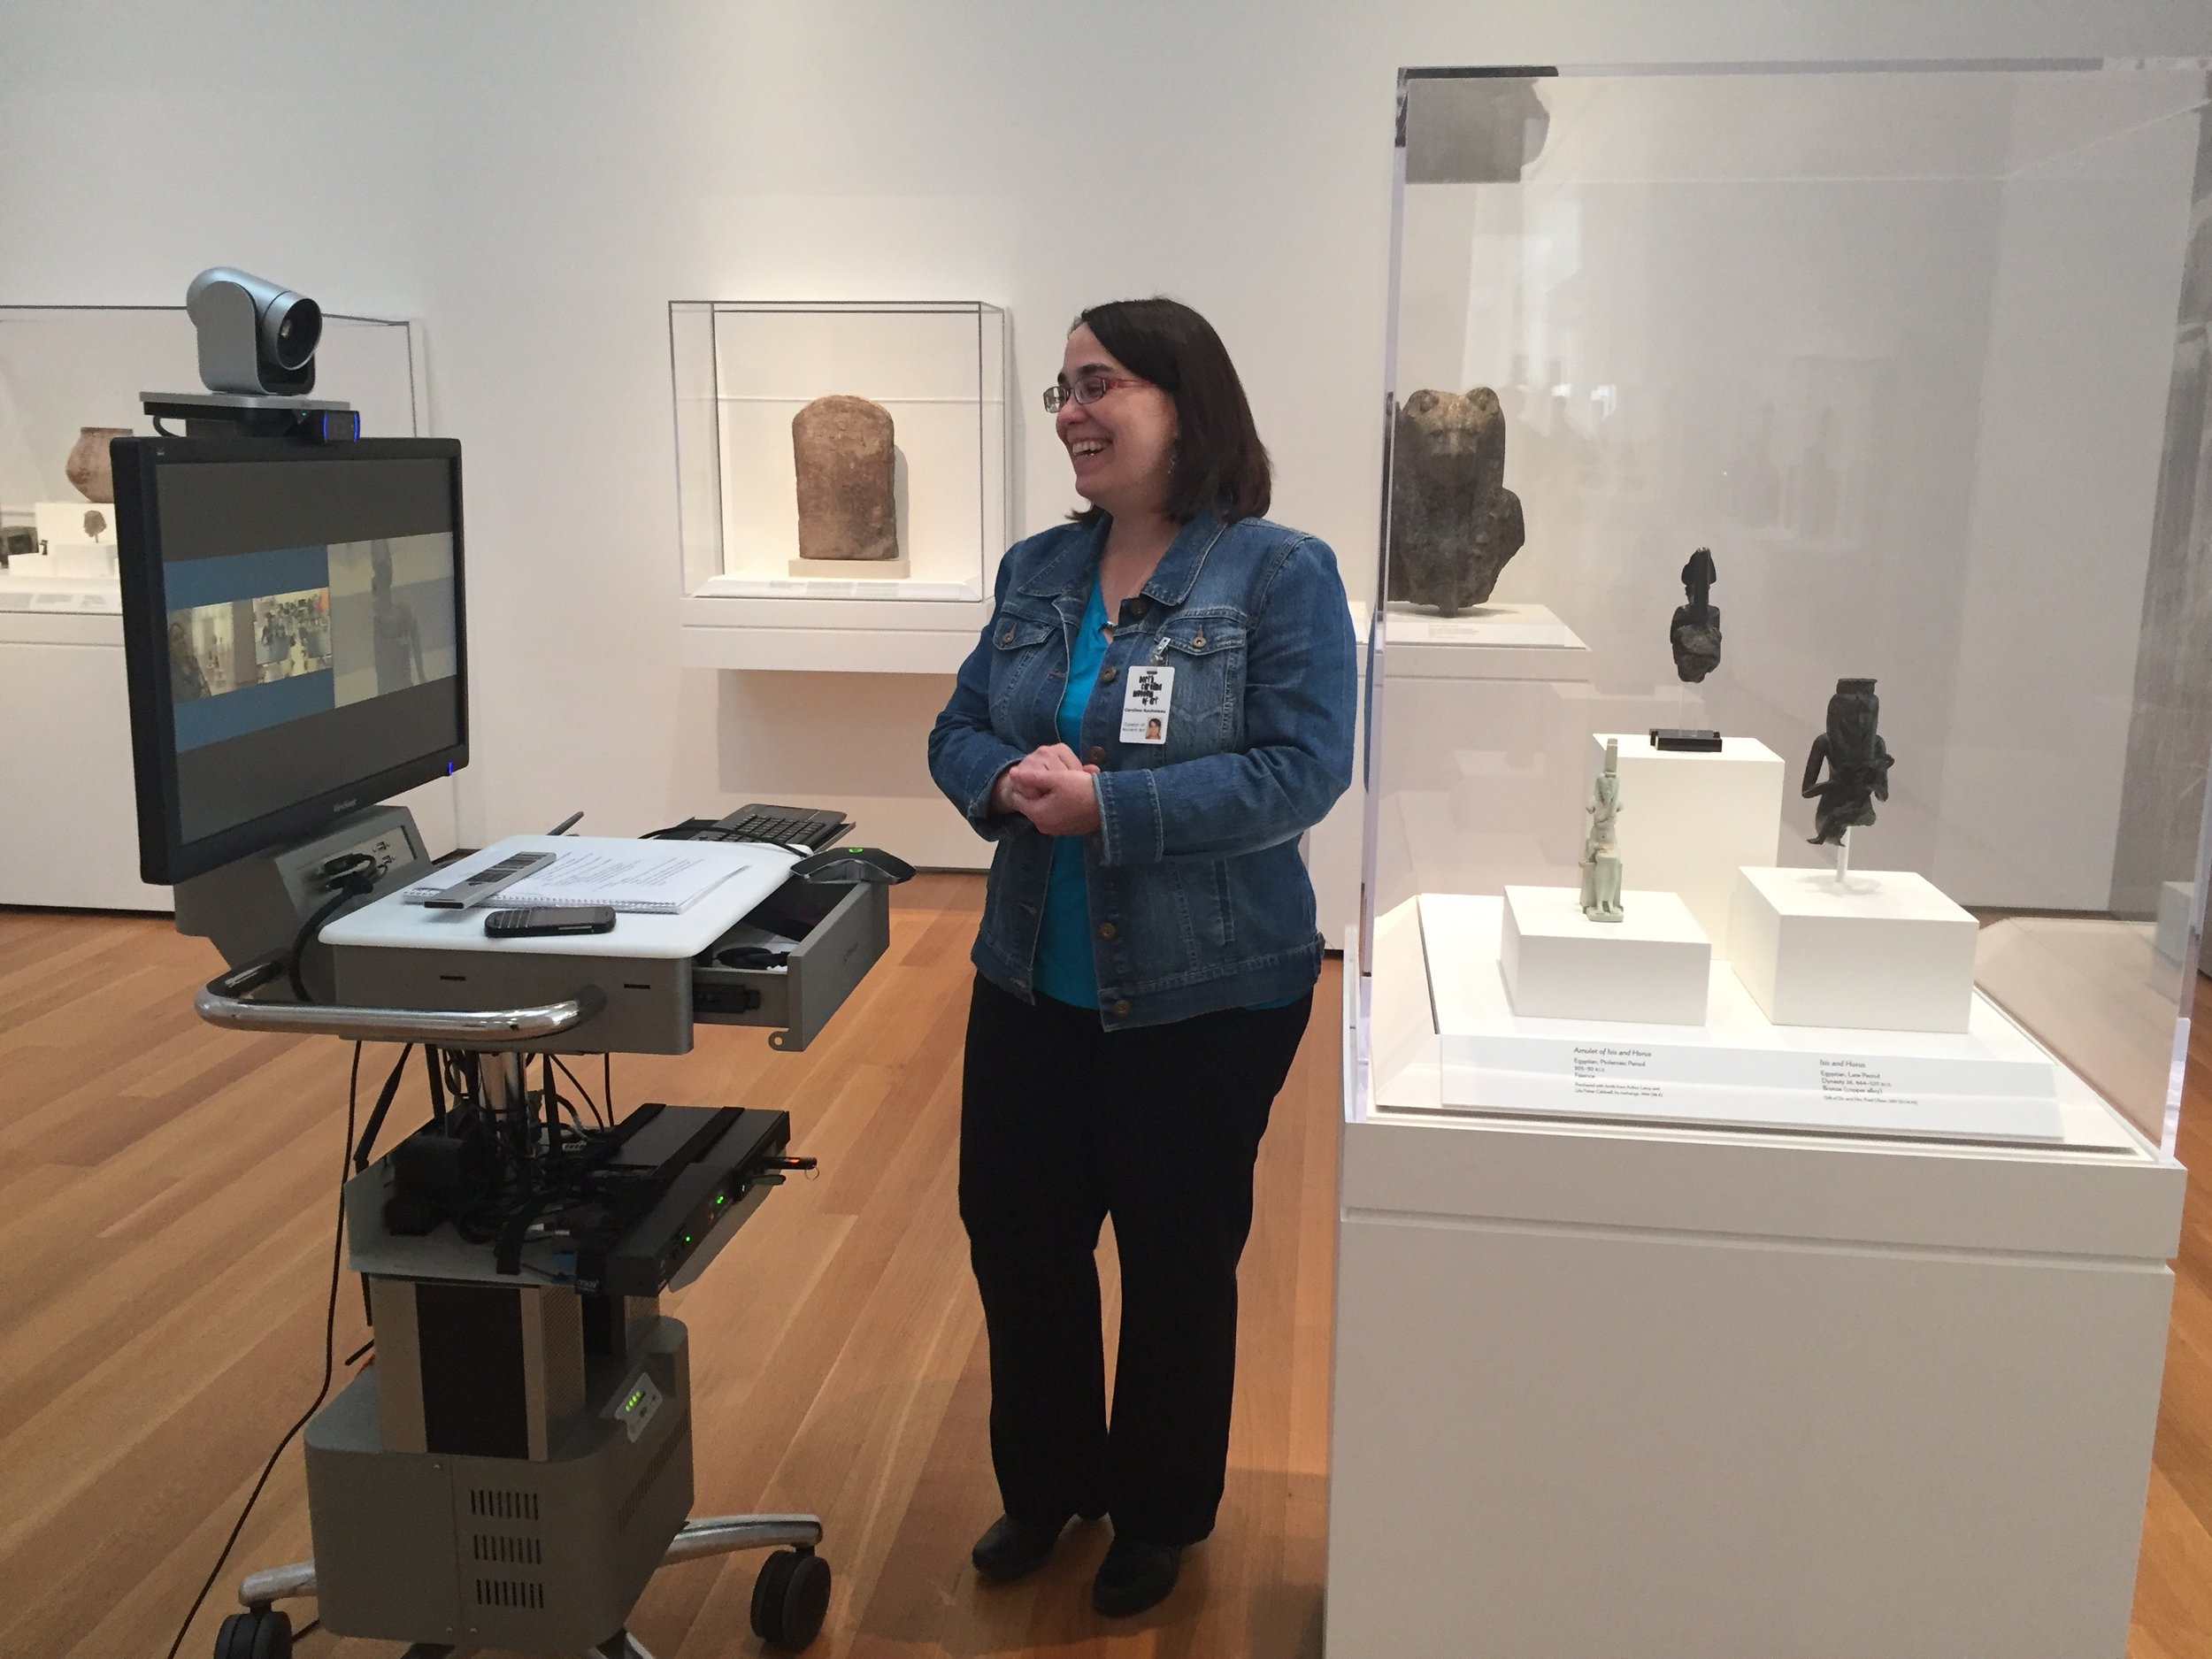 Live discussions with curators in the galleries during a blended learning program.